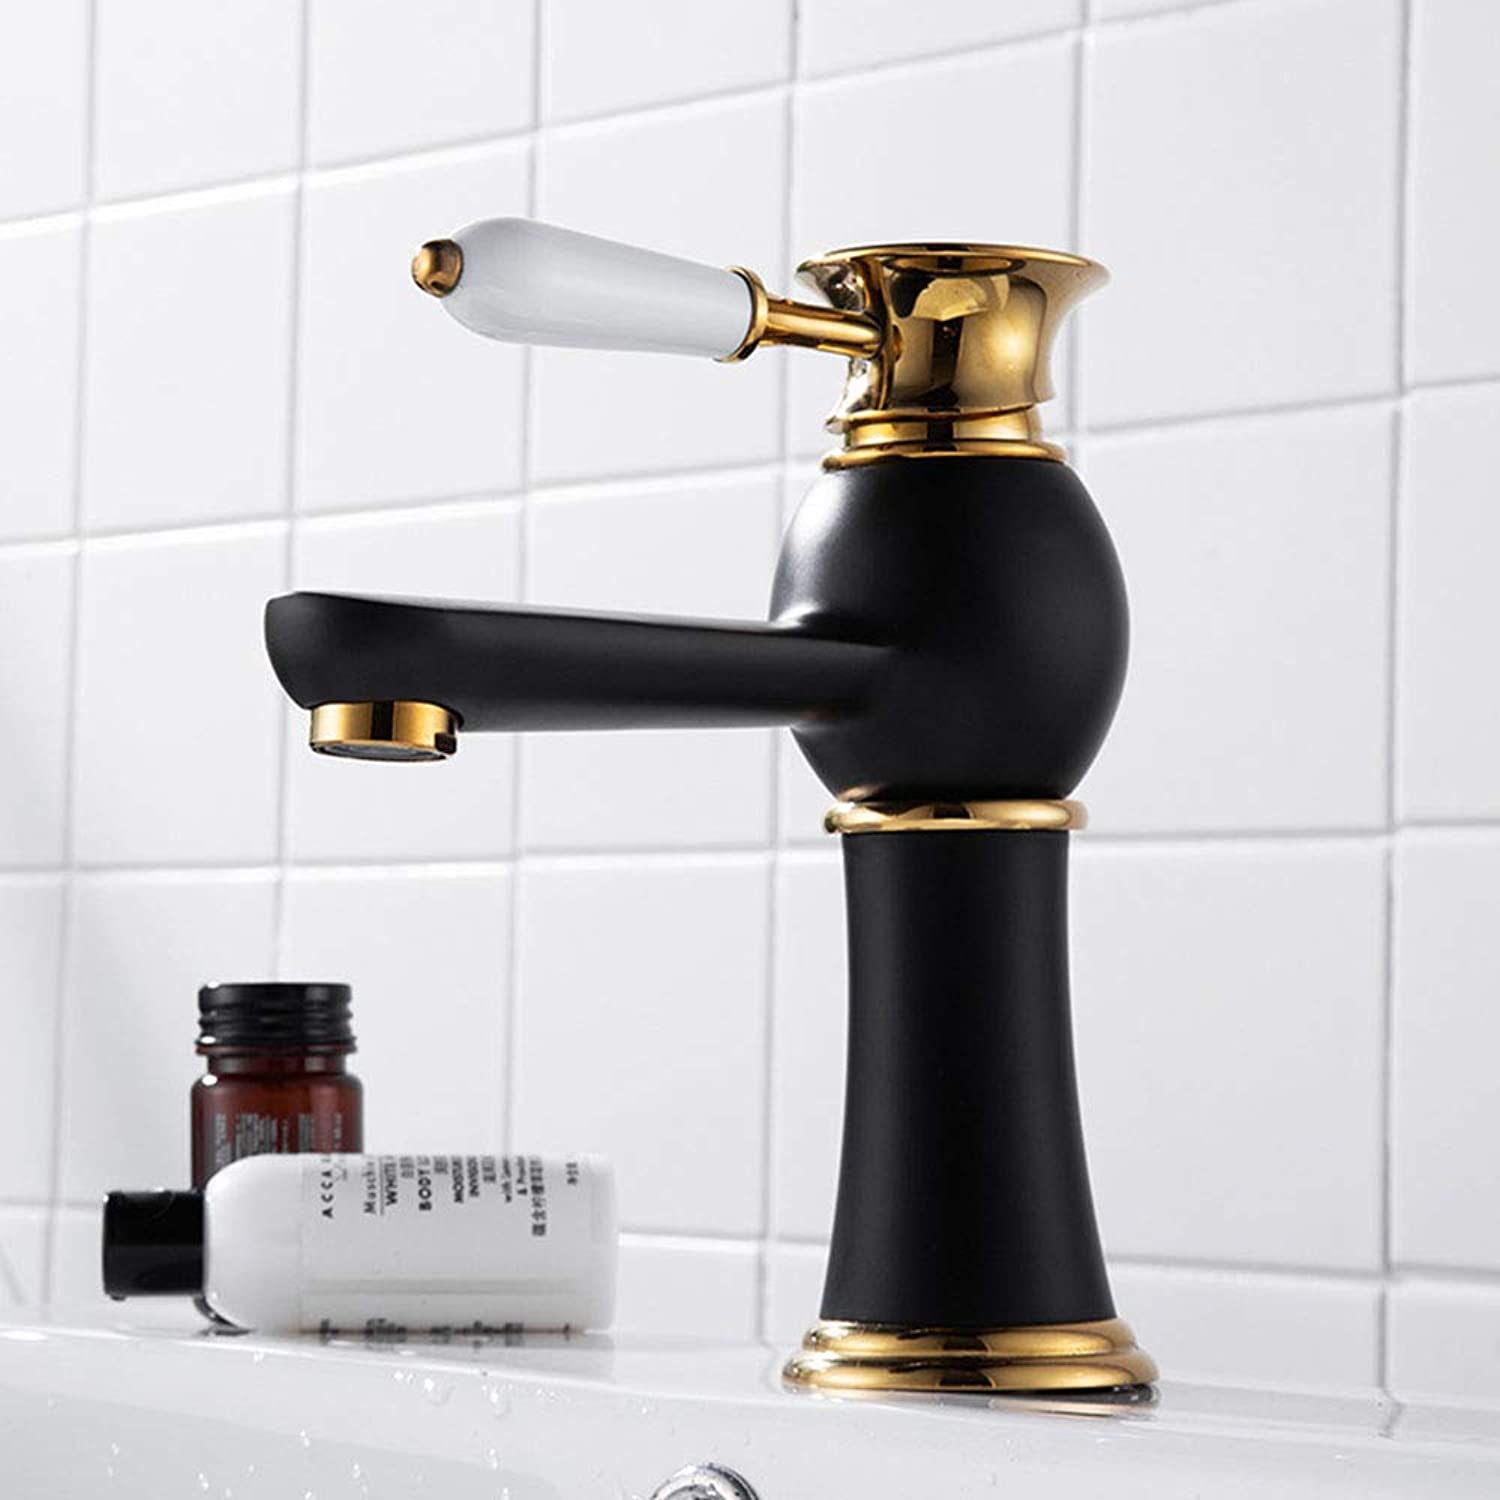 All-Copper Black Basin Faucet, European-Style Vanity Above Counter Basin Hot And Cold Faucet, Washbasin Bathroom Mixing Valve,B